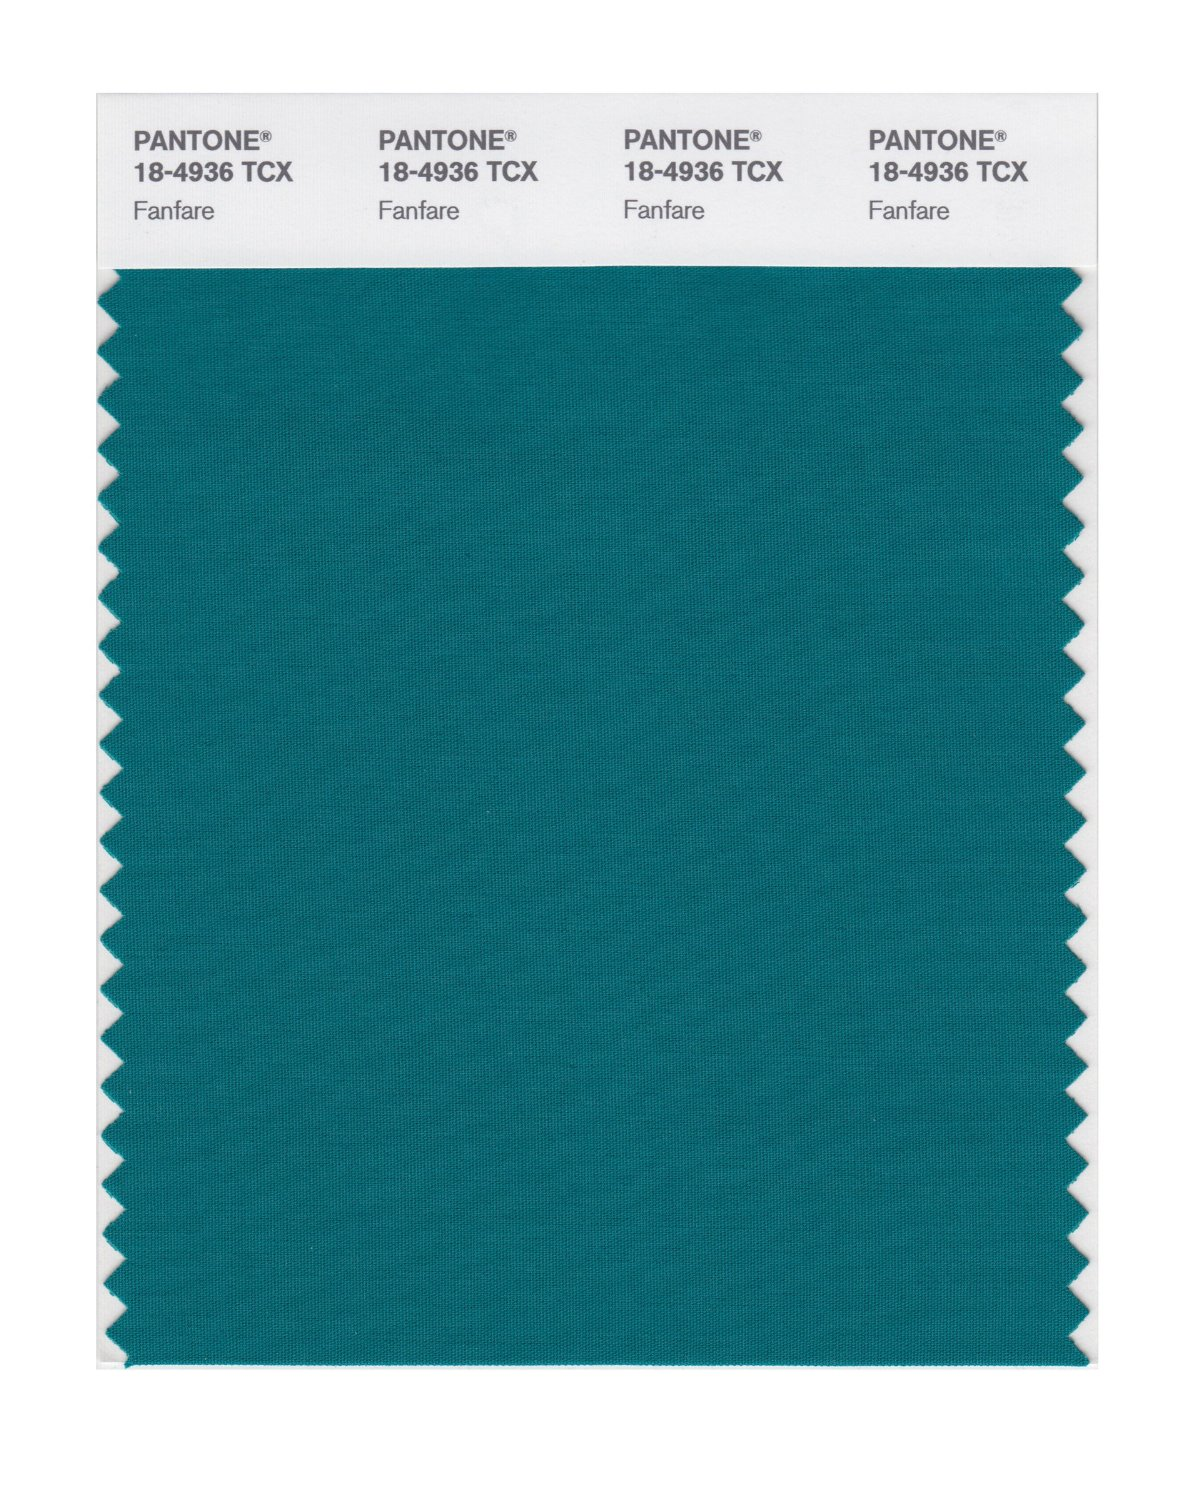 Pantone Smart Swatch 18-4936 Fanfare